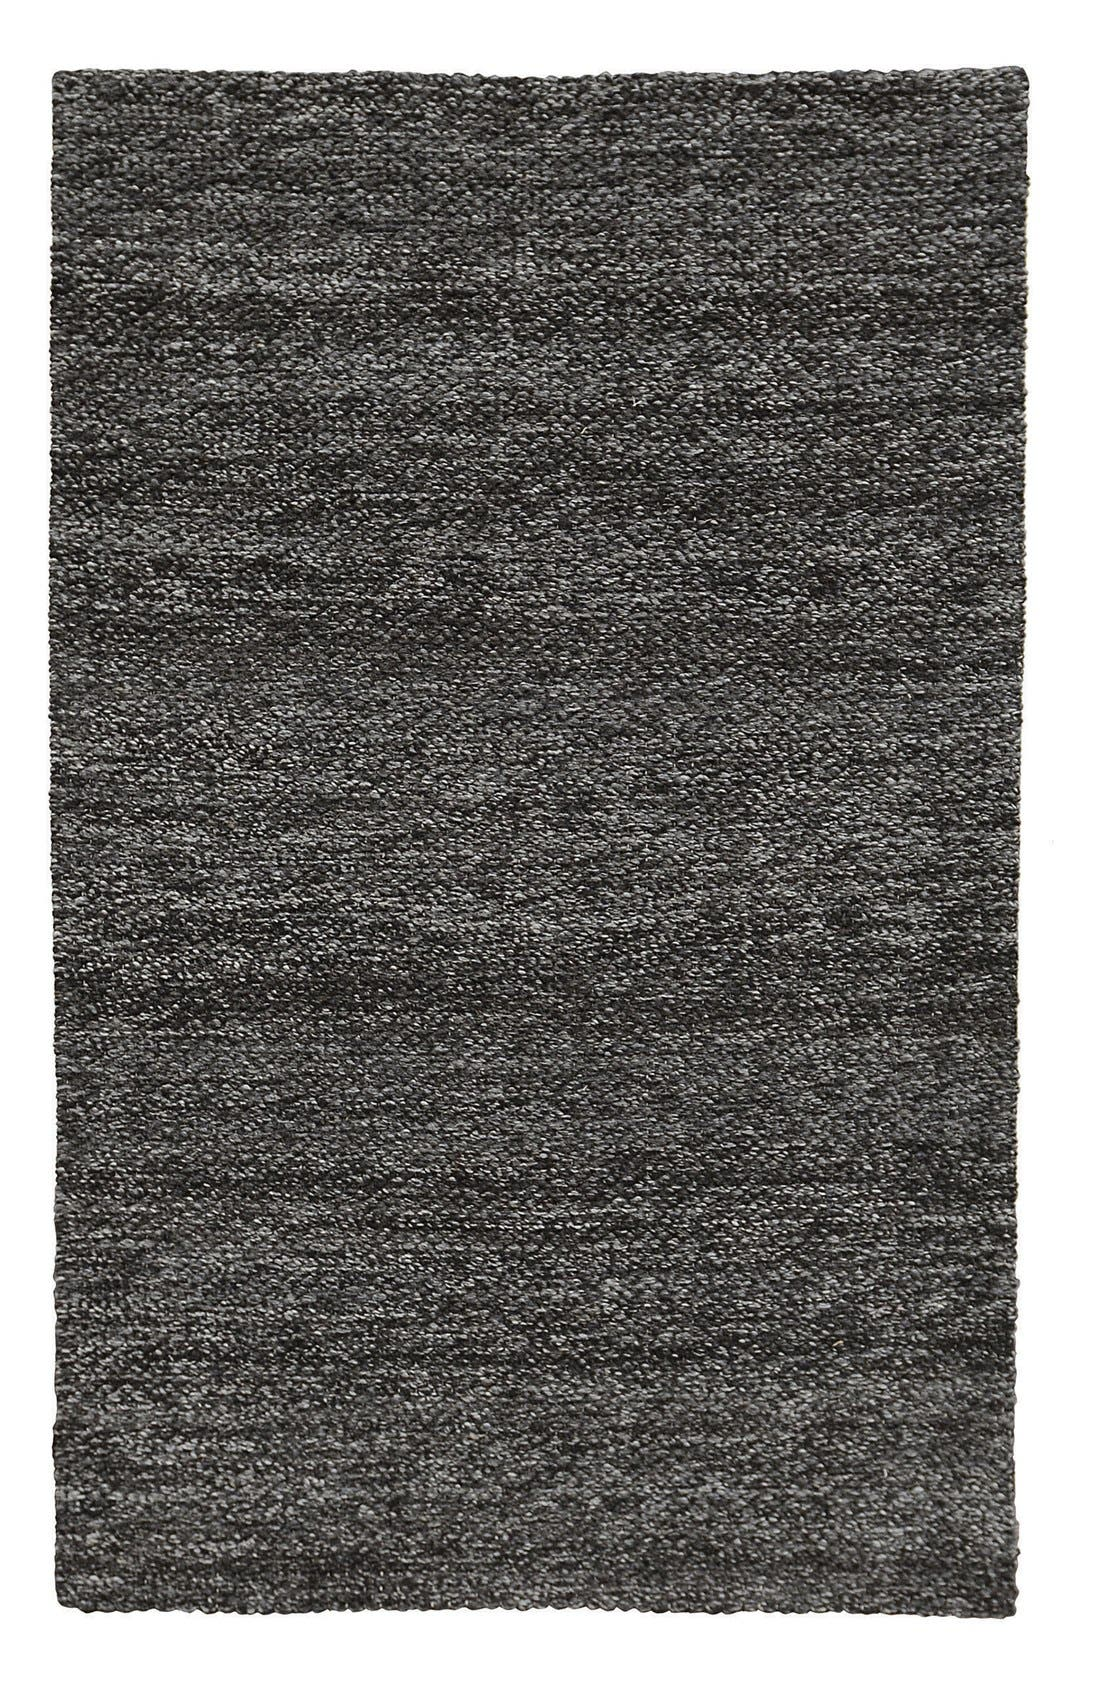 Heathered Wool Rug,                         Main,                         color, Black